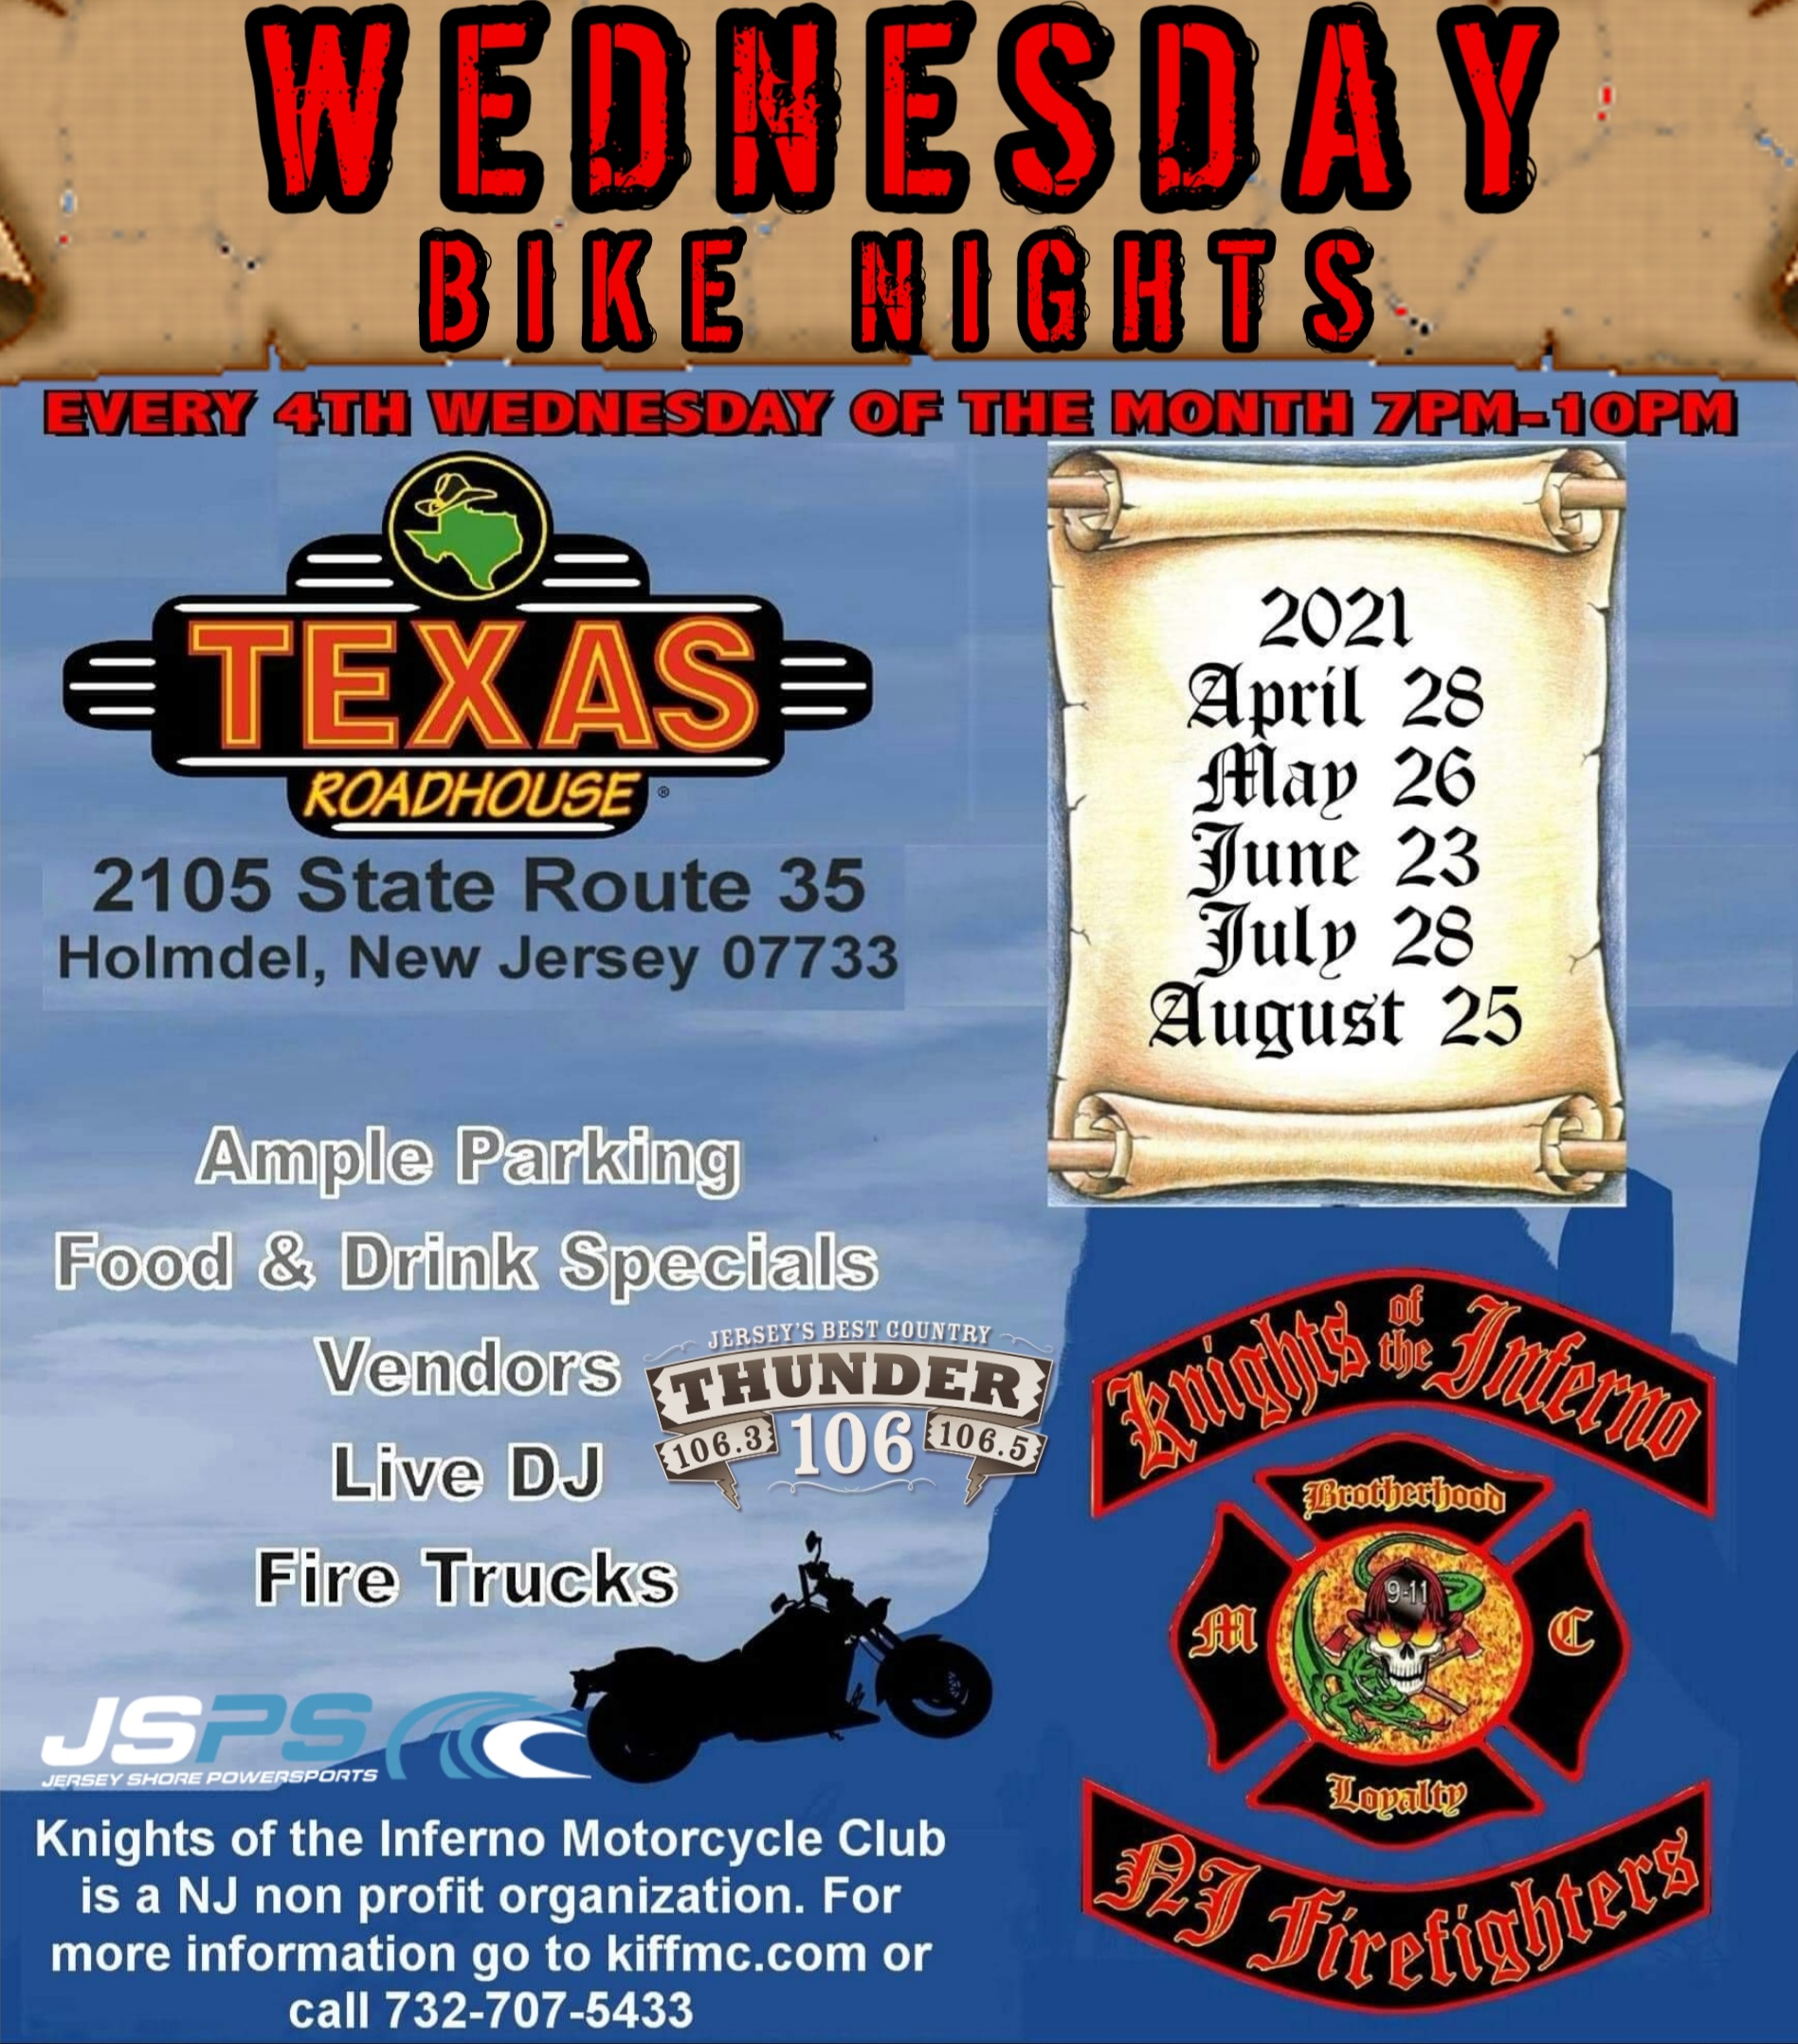 KOF Roadhouse - Knights of the Inferno Firefighter/Military Motorcycle Club of NJ  4th annual bike night series